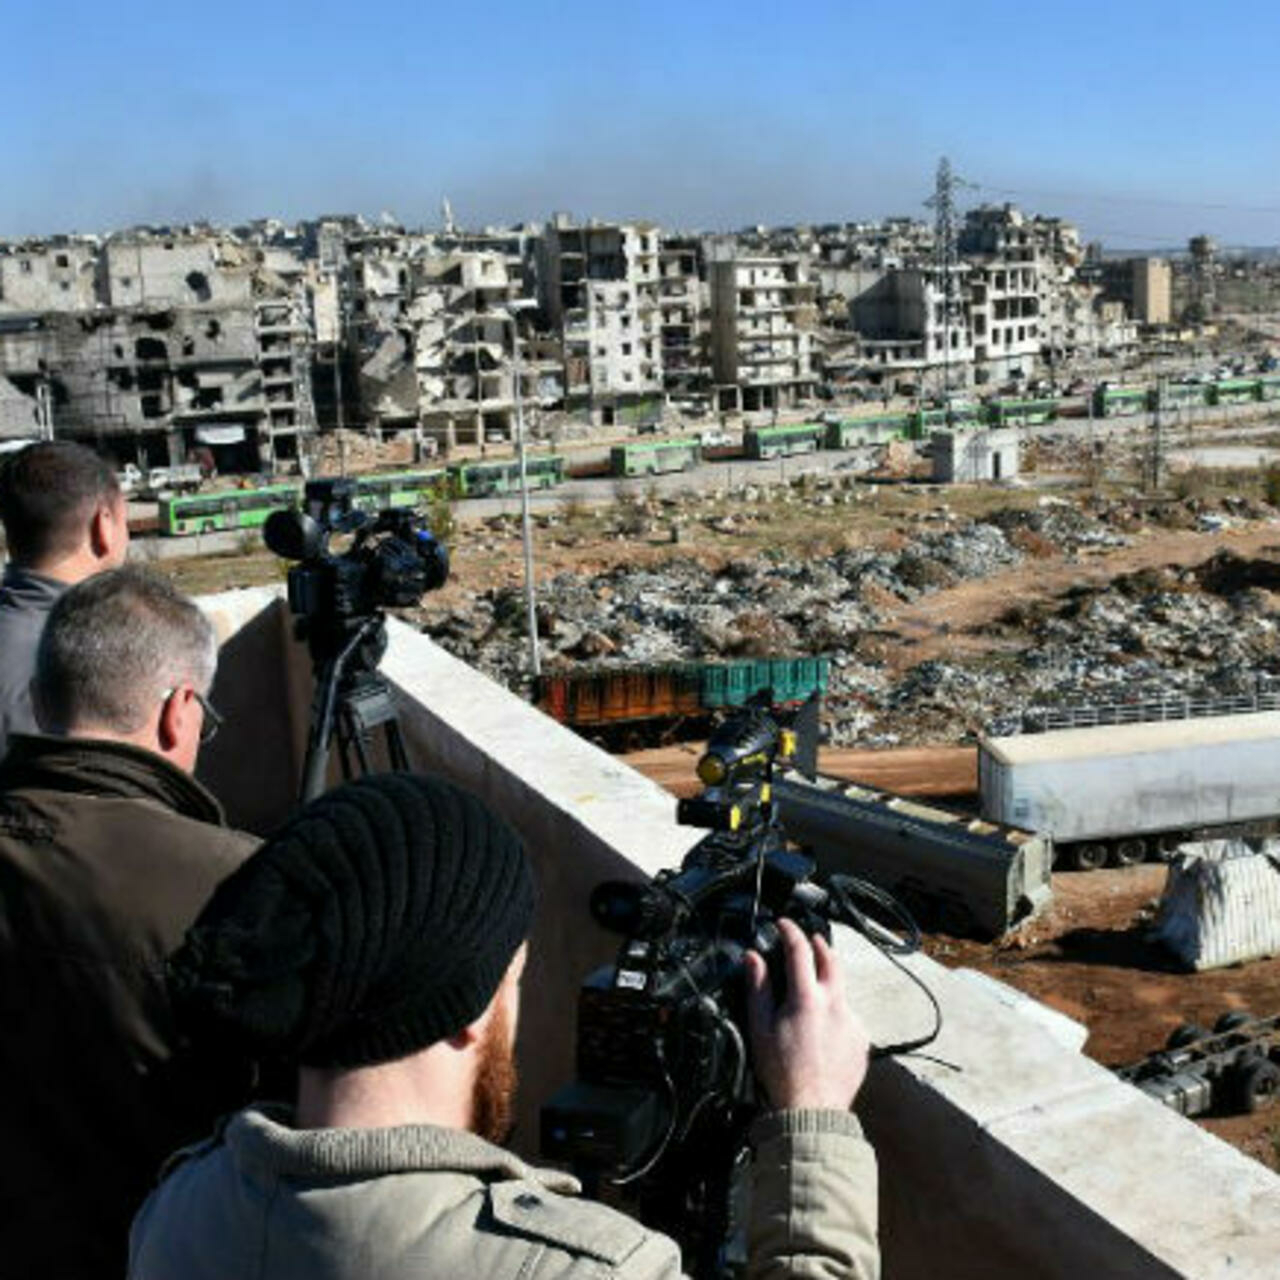 Journalists filming buses evacuating opposition fighters and their families from opposition-held neighborhoods in the besieged city of Aleppo - 15 December 2016 (George Ourfalian, AFP)